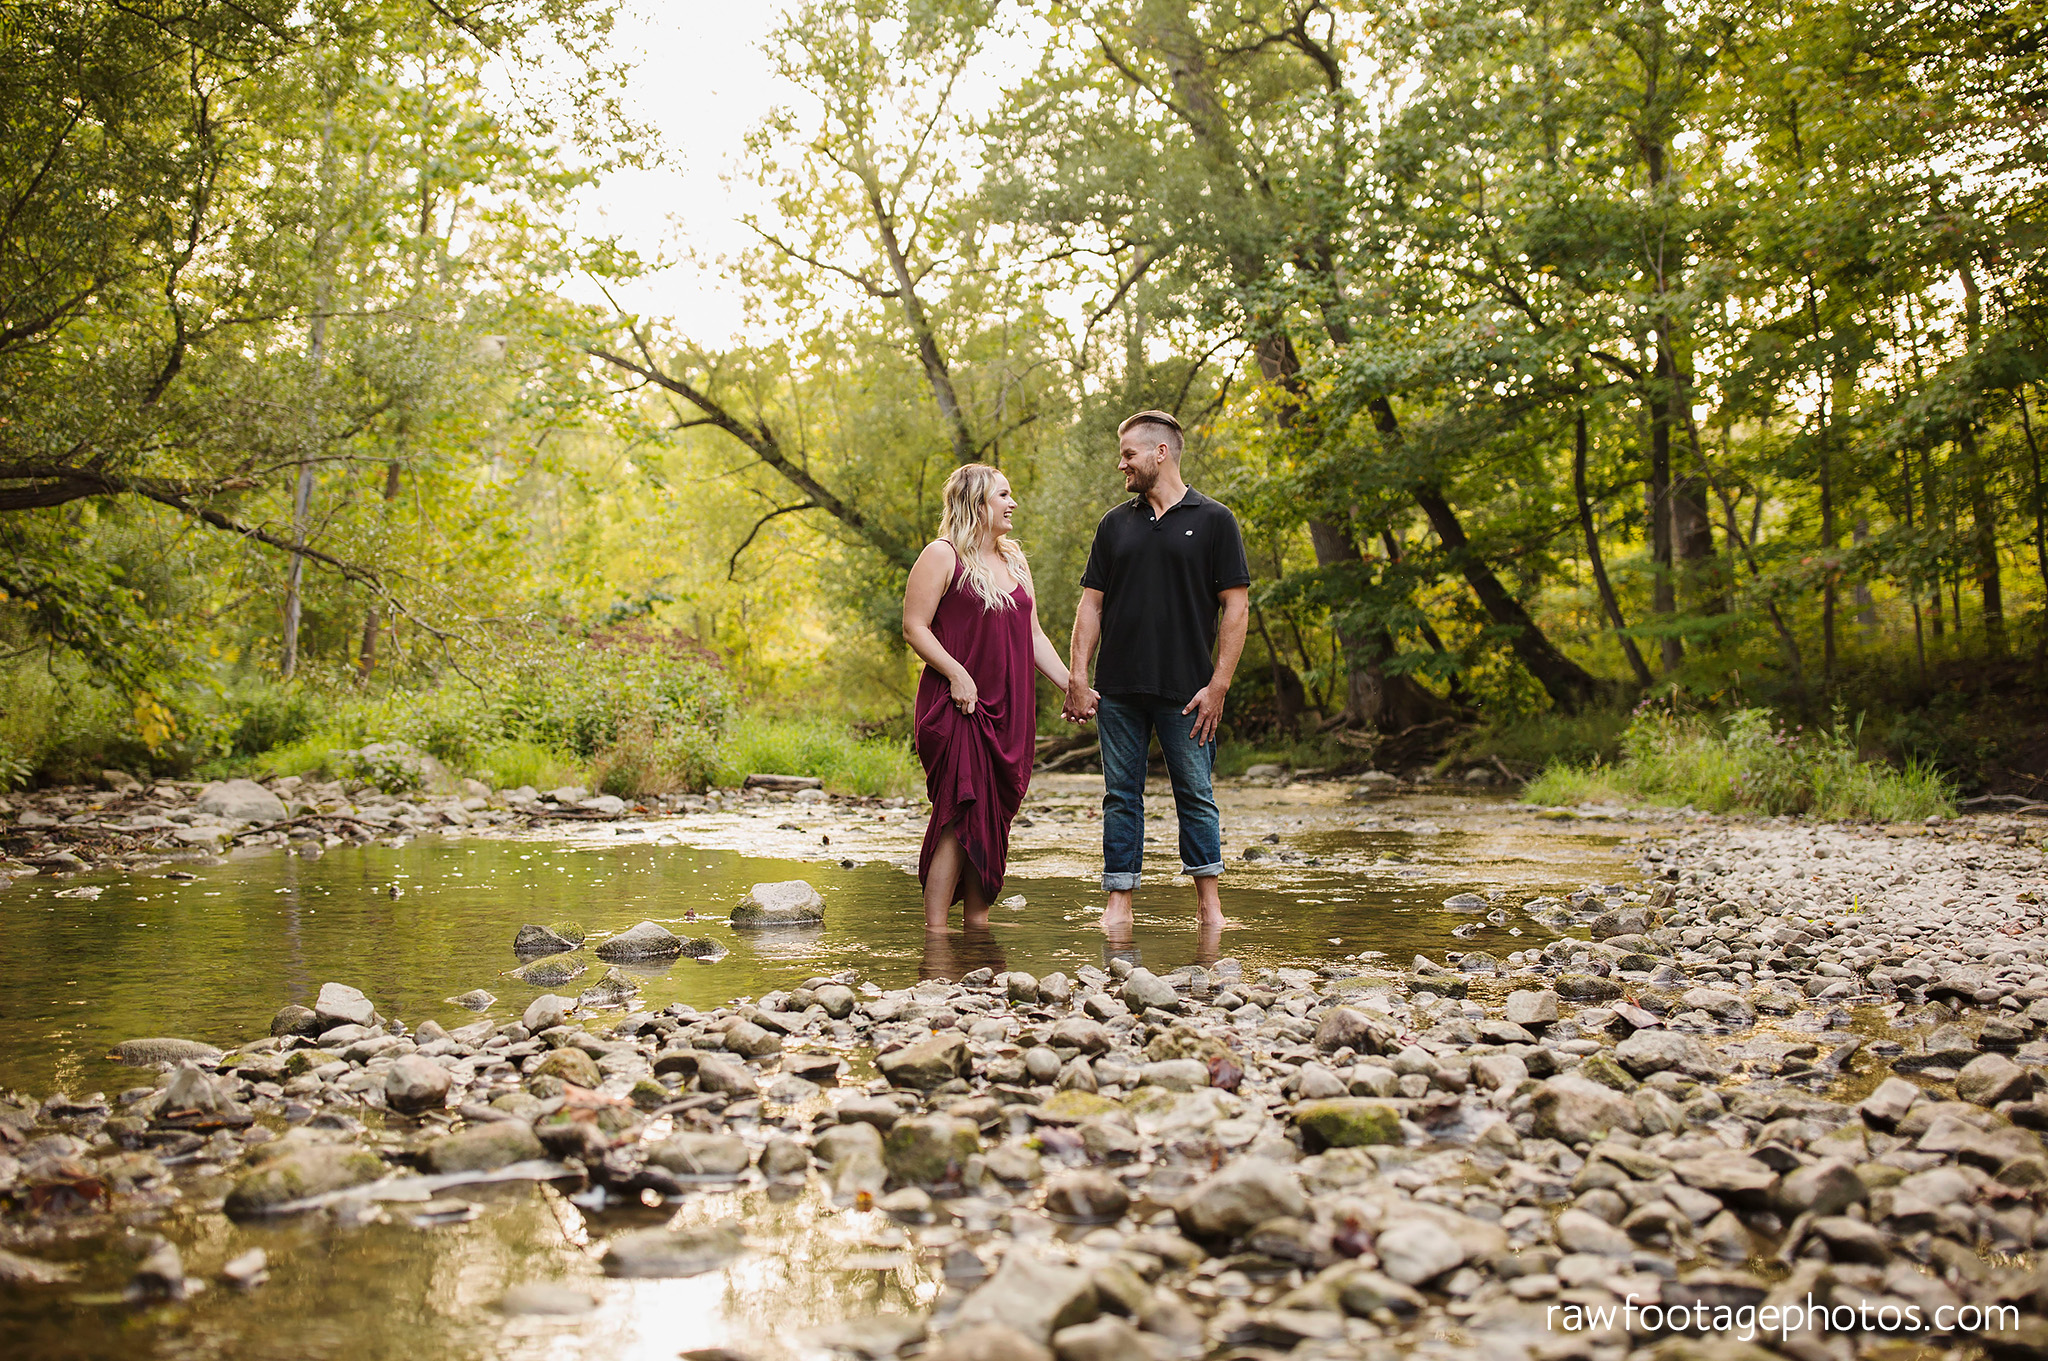 london_ontario_wedding_photographer-woodsy_engagement_session-e_session-engagement_photos-medway_creek-medway_heritage_forest-raw_forest_photography026.jpg